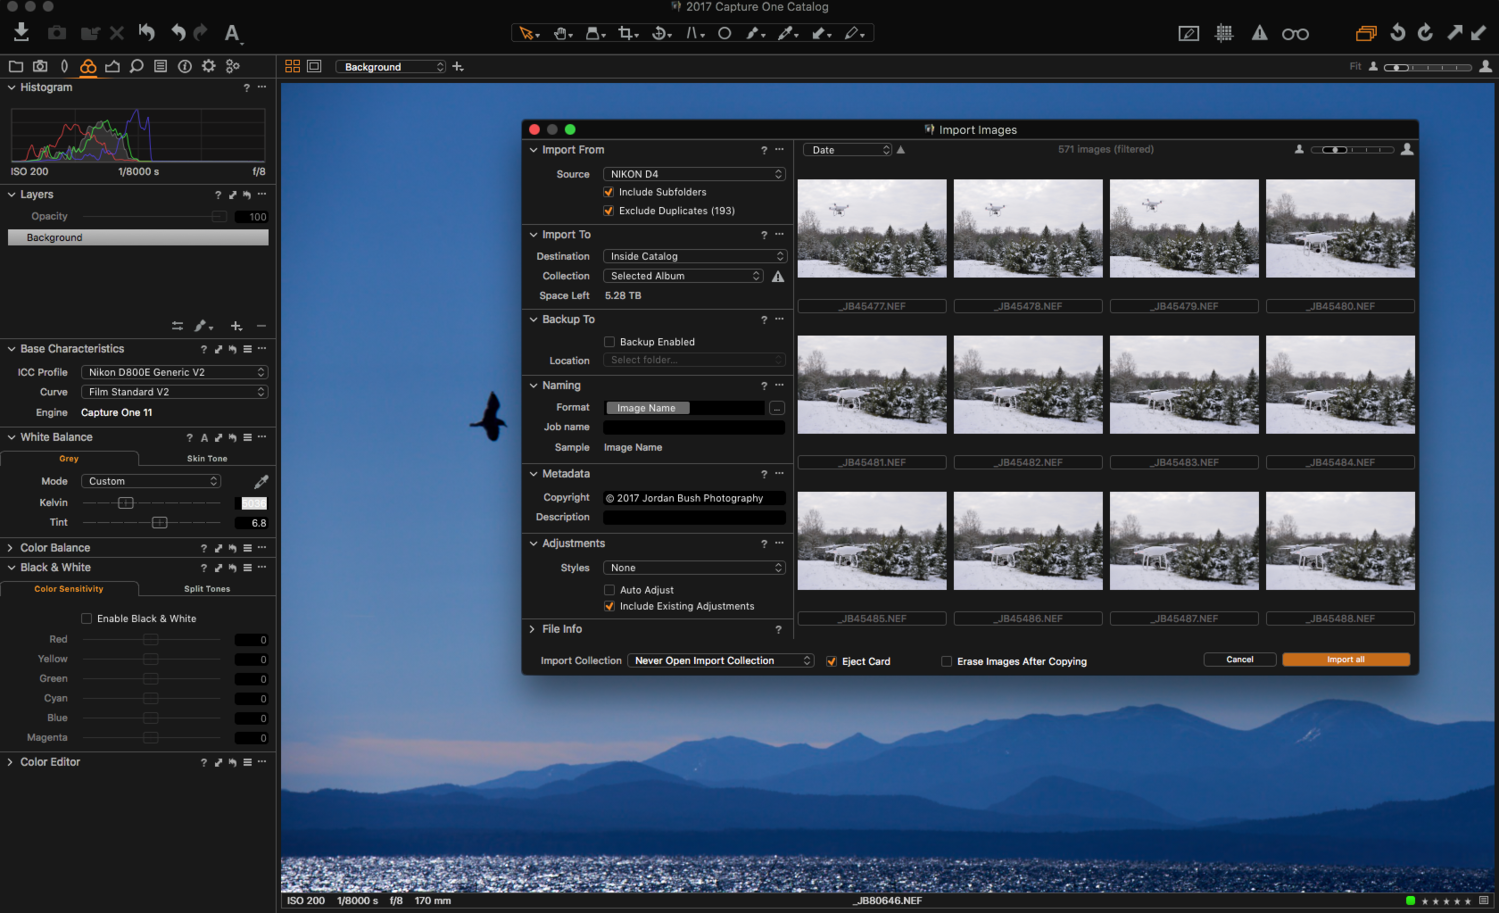 Capture One 11 In-Depth Review | Fstoppers